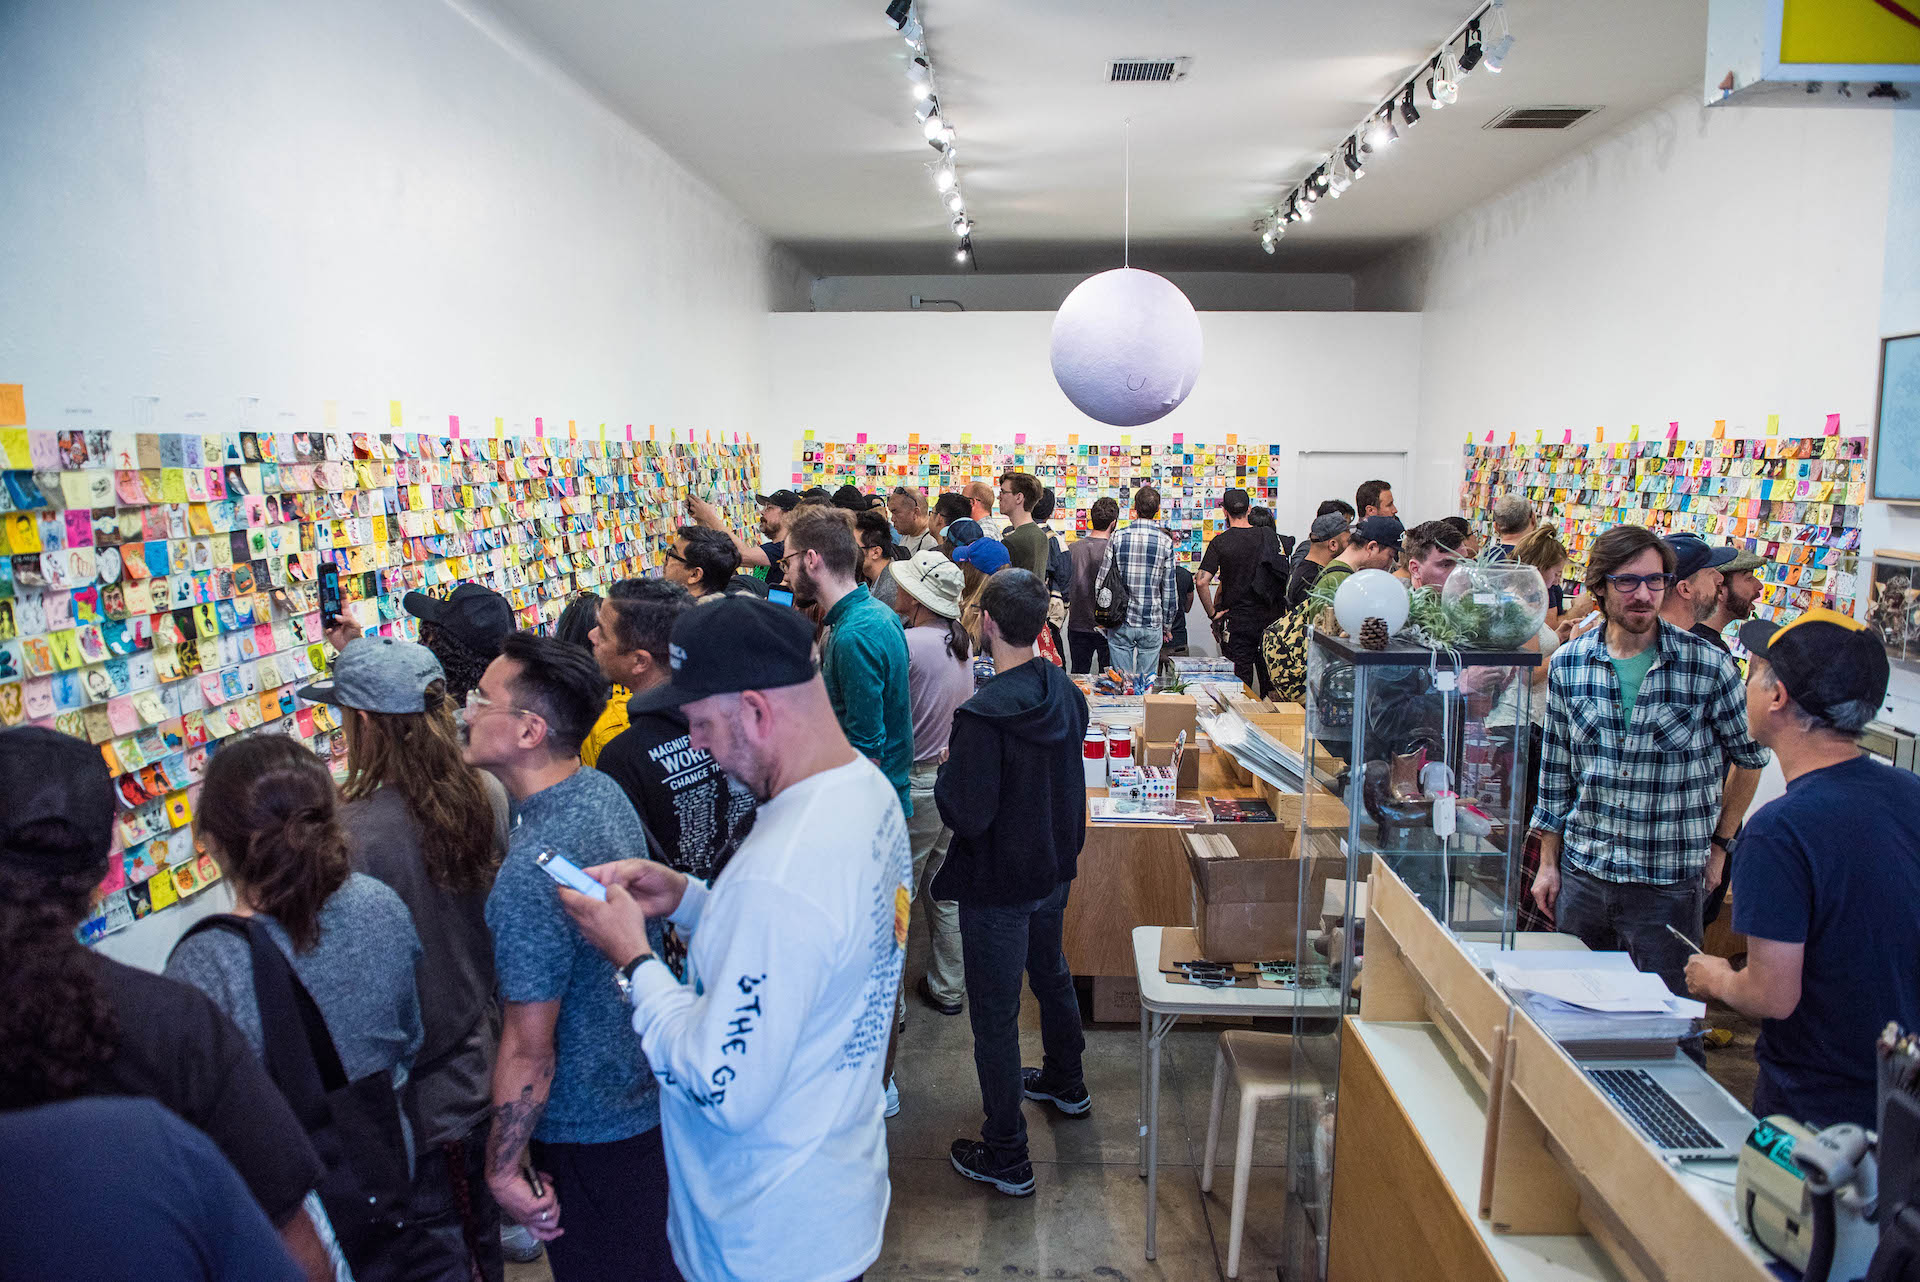 Giant Robot founder Eric Nakamura (right in the yellow-black cap) at the register as patrons jot down the post-its they wish to purchase.